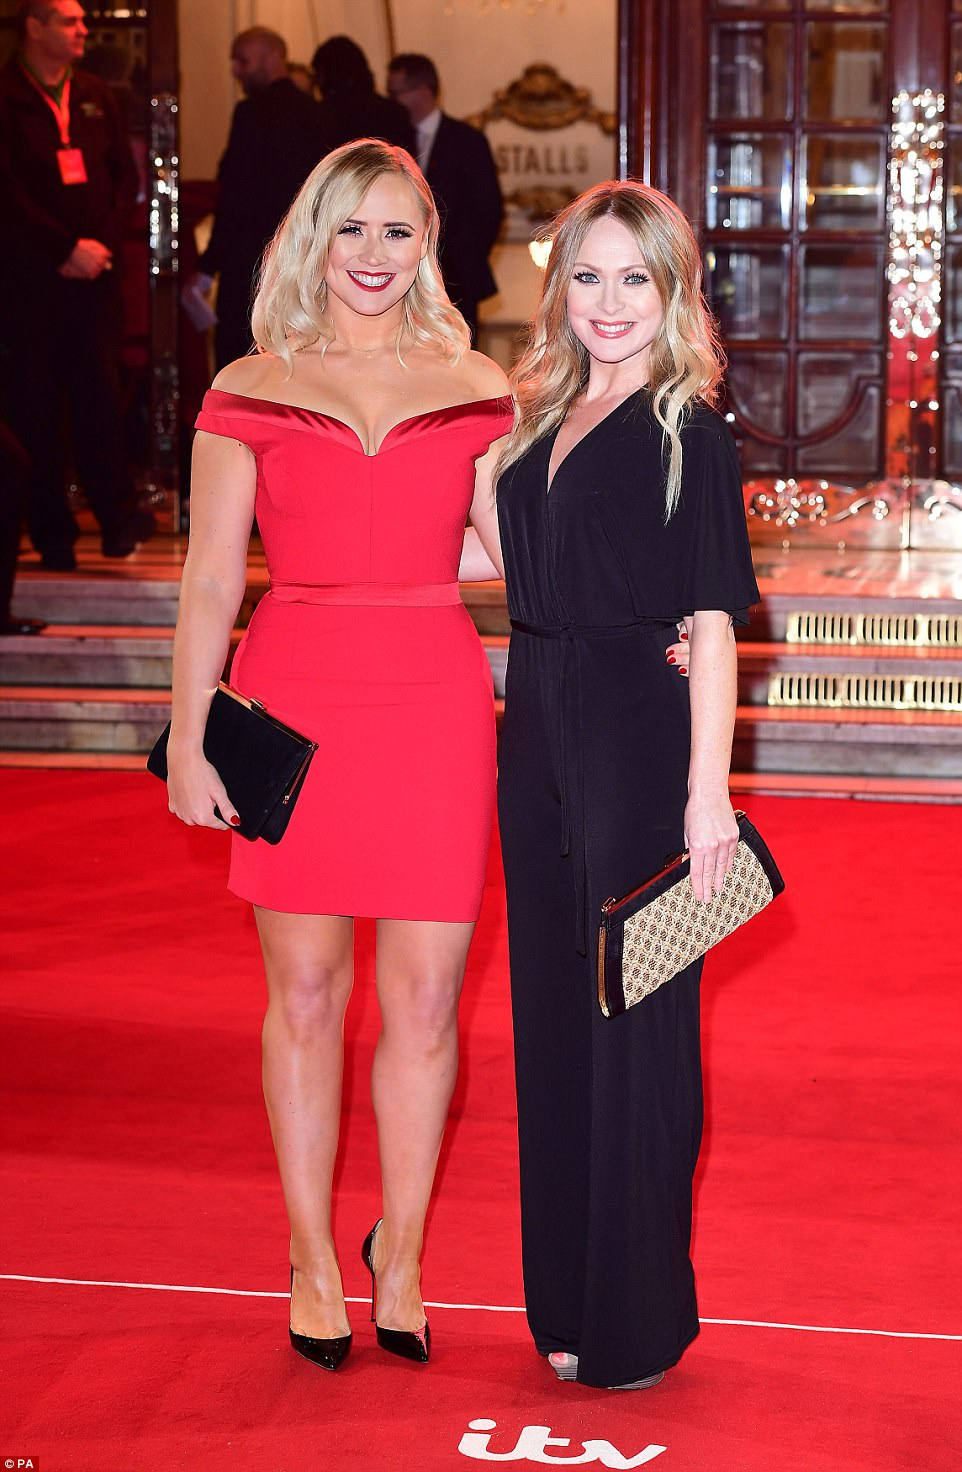 Double trouble: The 30-year-old star beamed as she cosied up to fellow Emmerdale starMichelle Hardwick at the bash